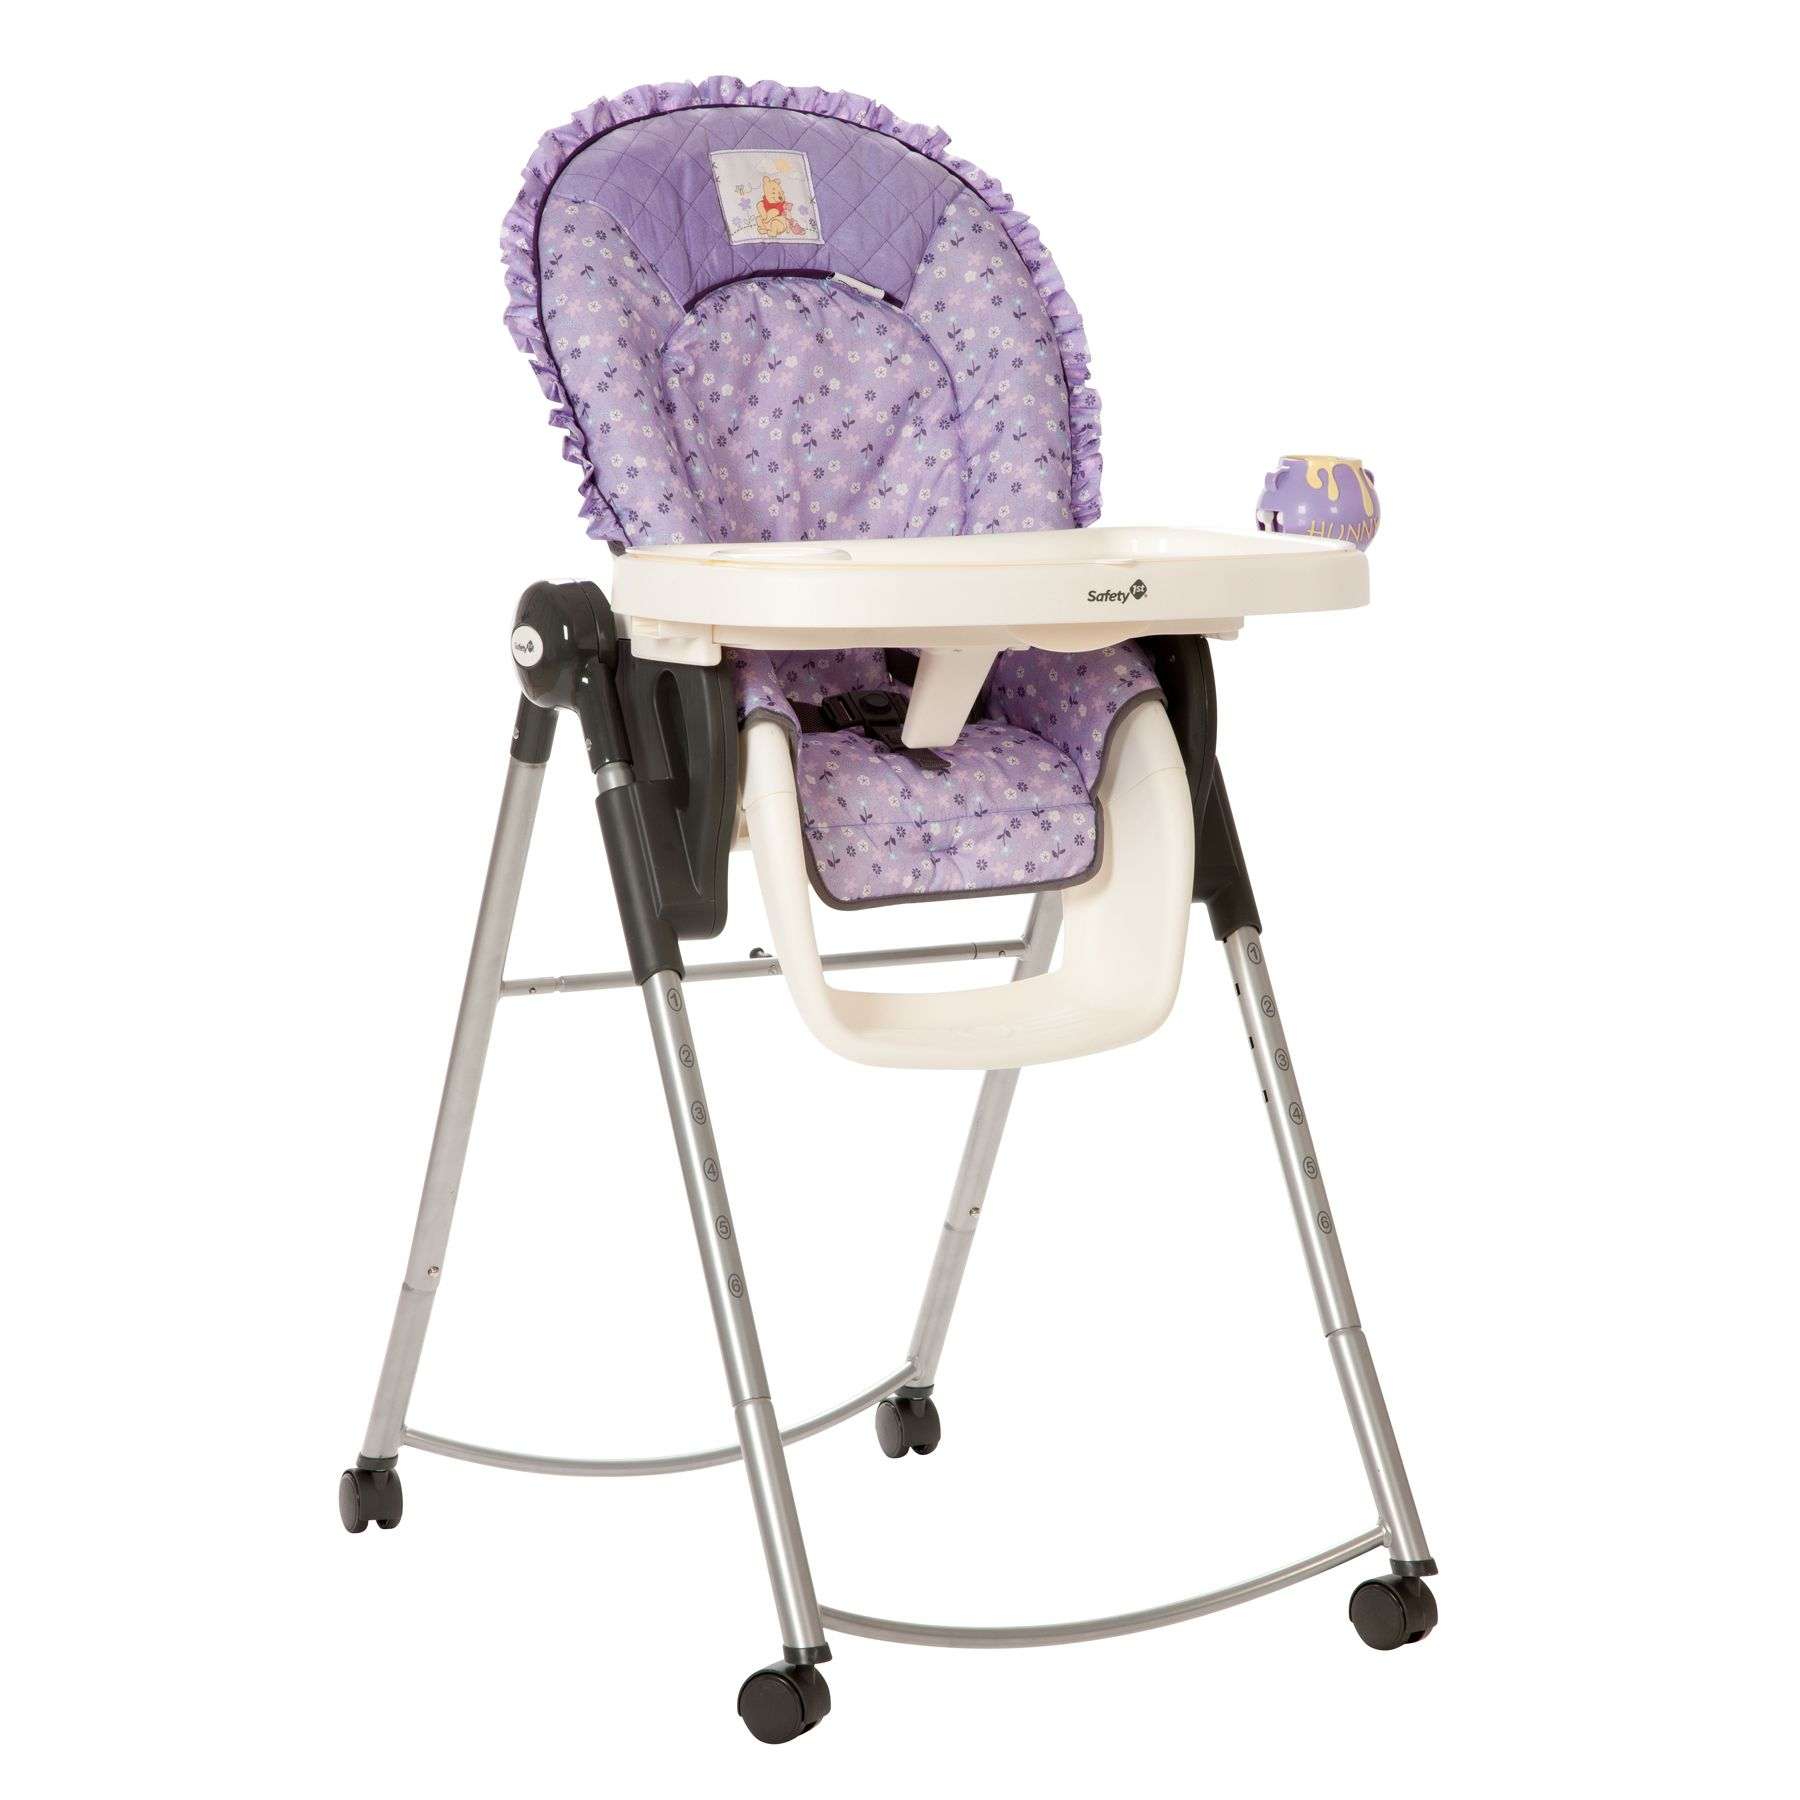 Sofa Chair For Baby Girl Green Buffalo Check Pooh 39s Garden Adjustable High From Safety 1st